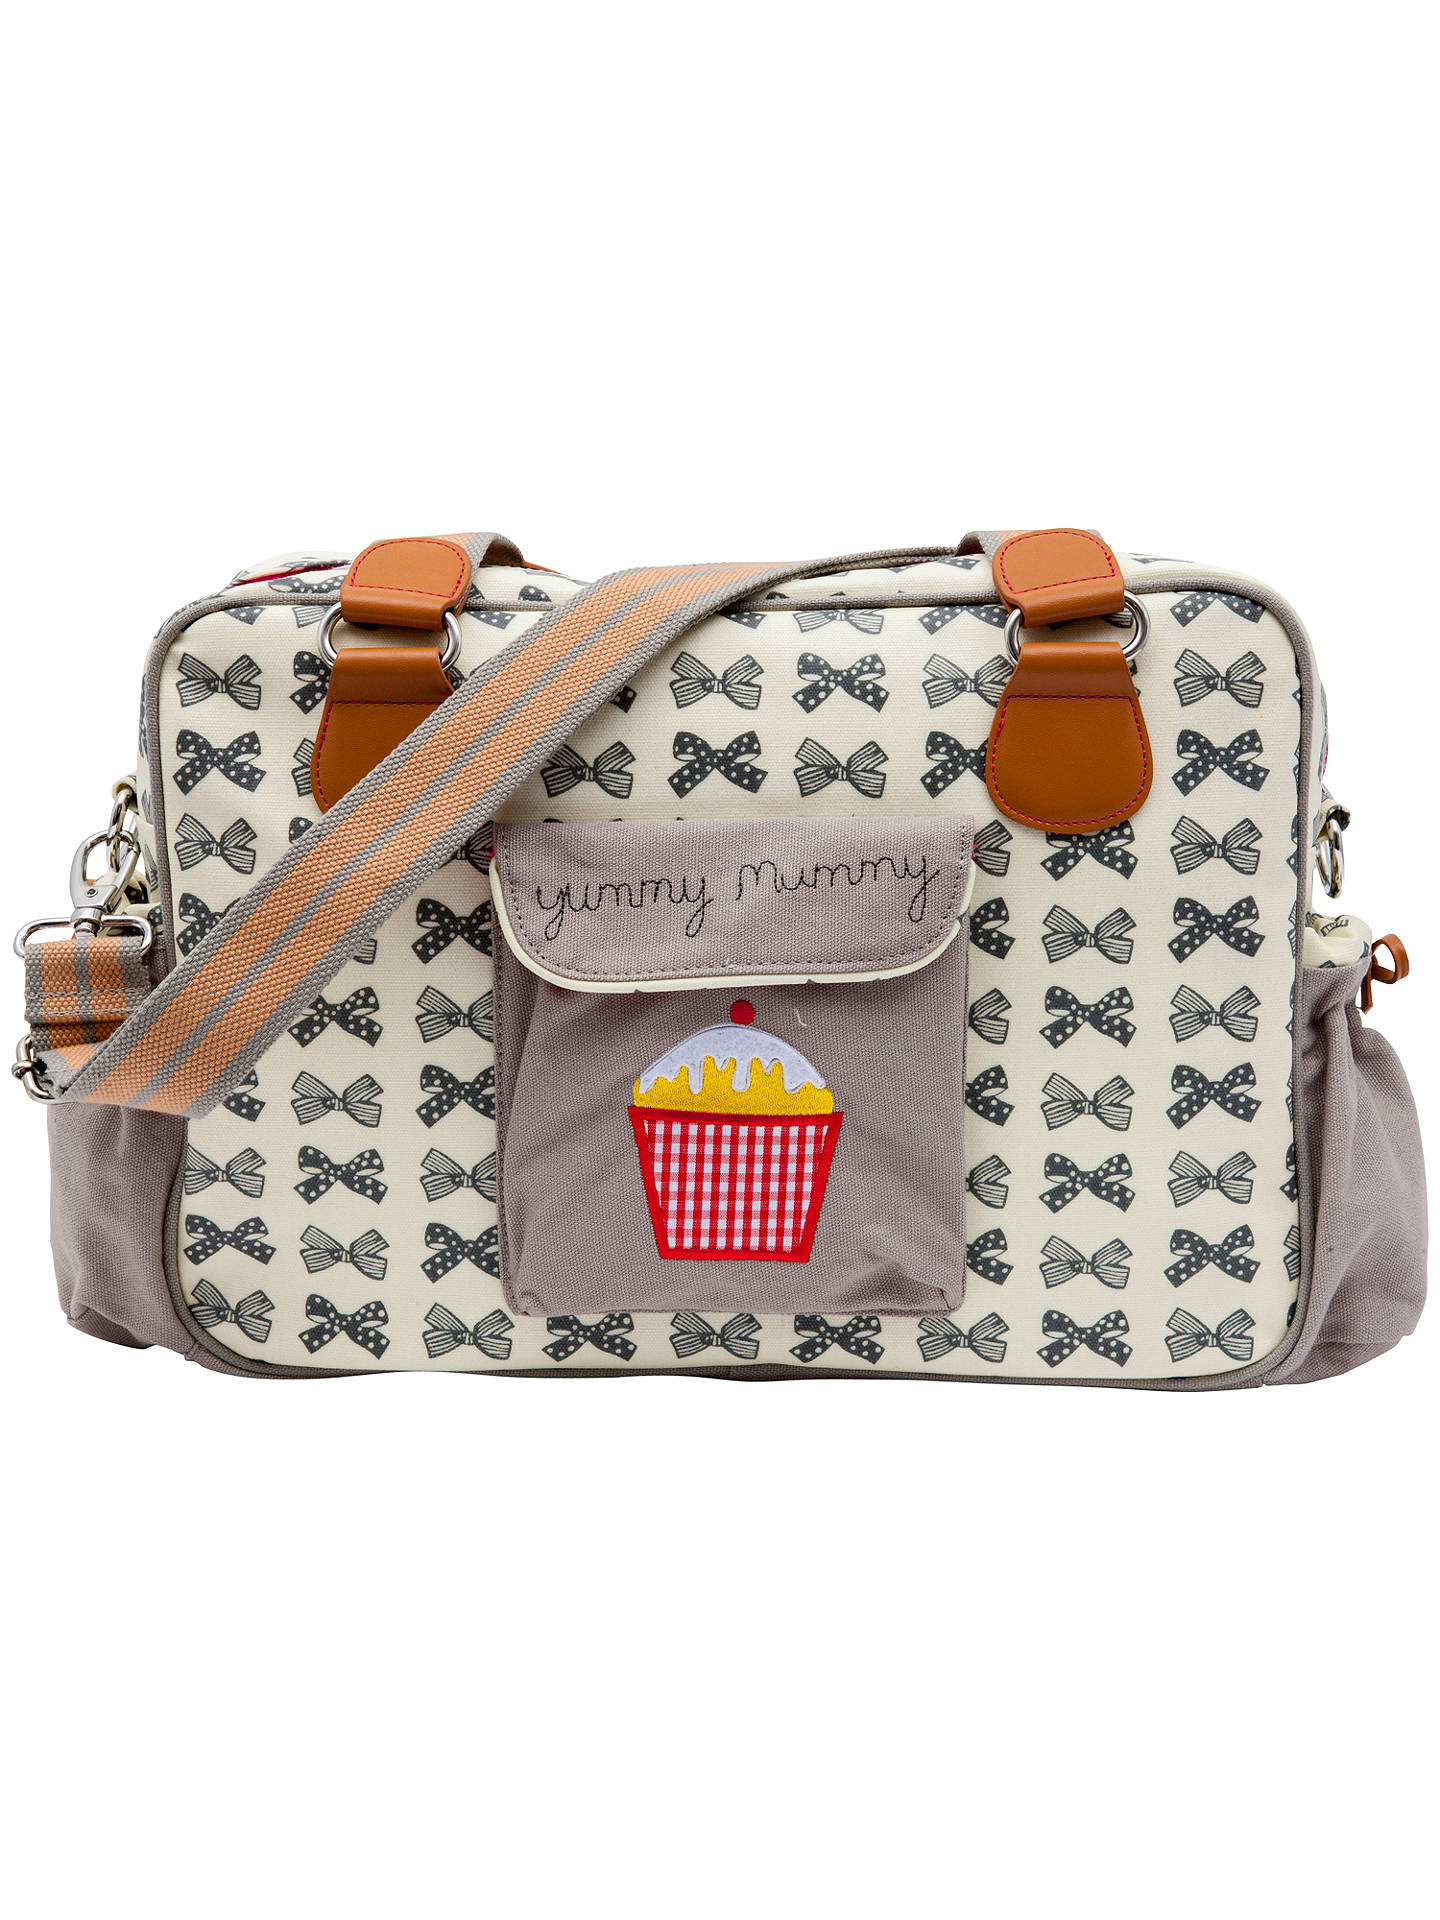 b81c7e2ee0 Buy Pink Lining Yummy Mummy Bow Print Changing Bag, Grey Online at  johnlewis.com ...